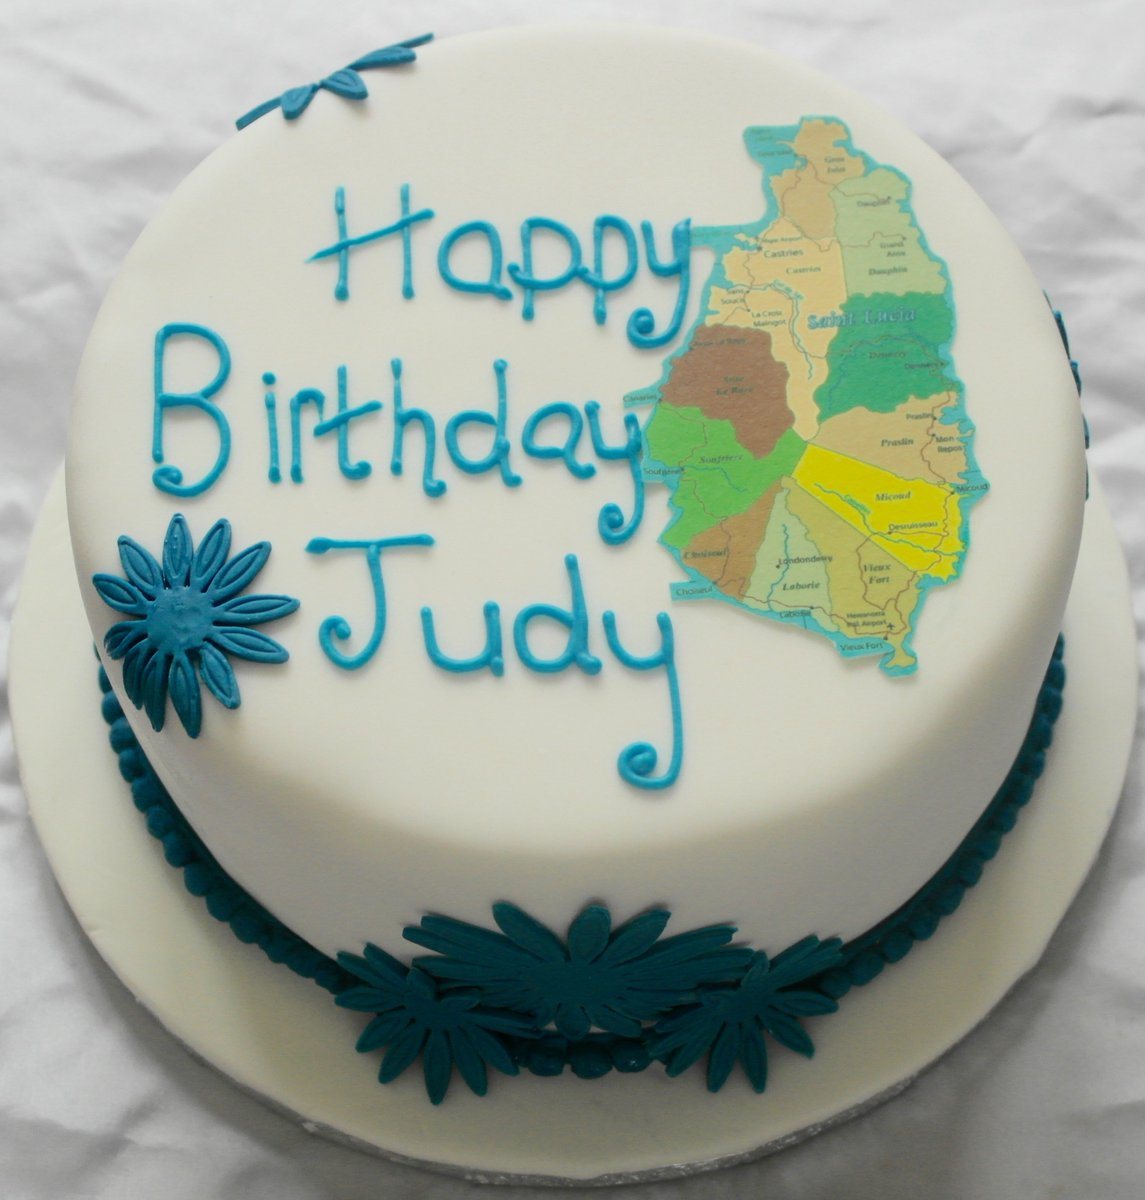 Caribbean Cupcakes On Twitter Happy Birthday Judy Rum Cake With